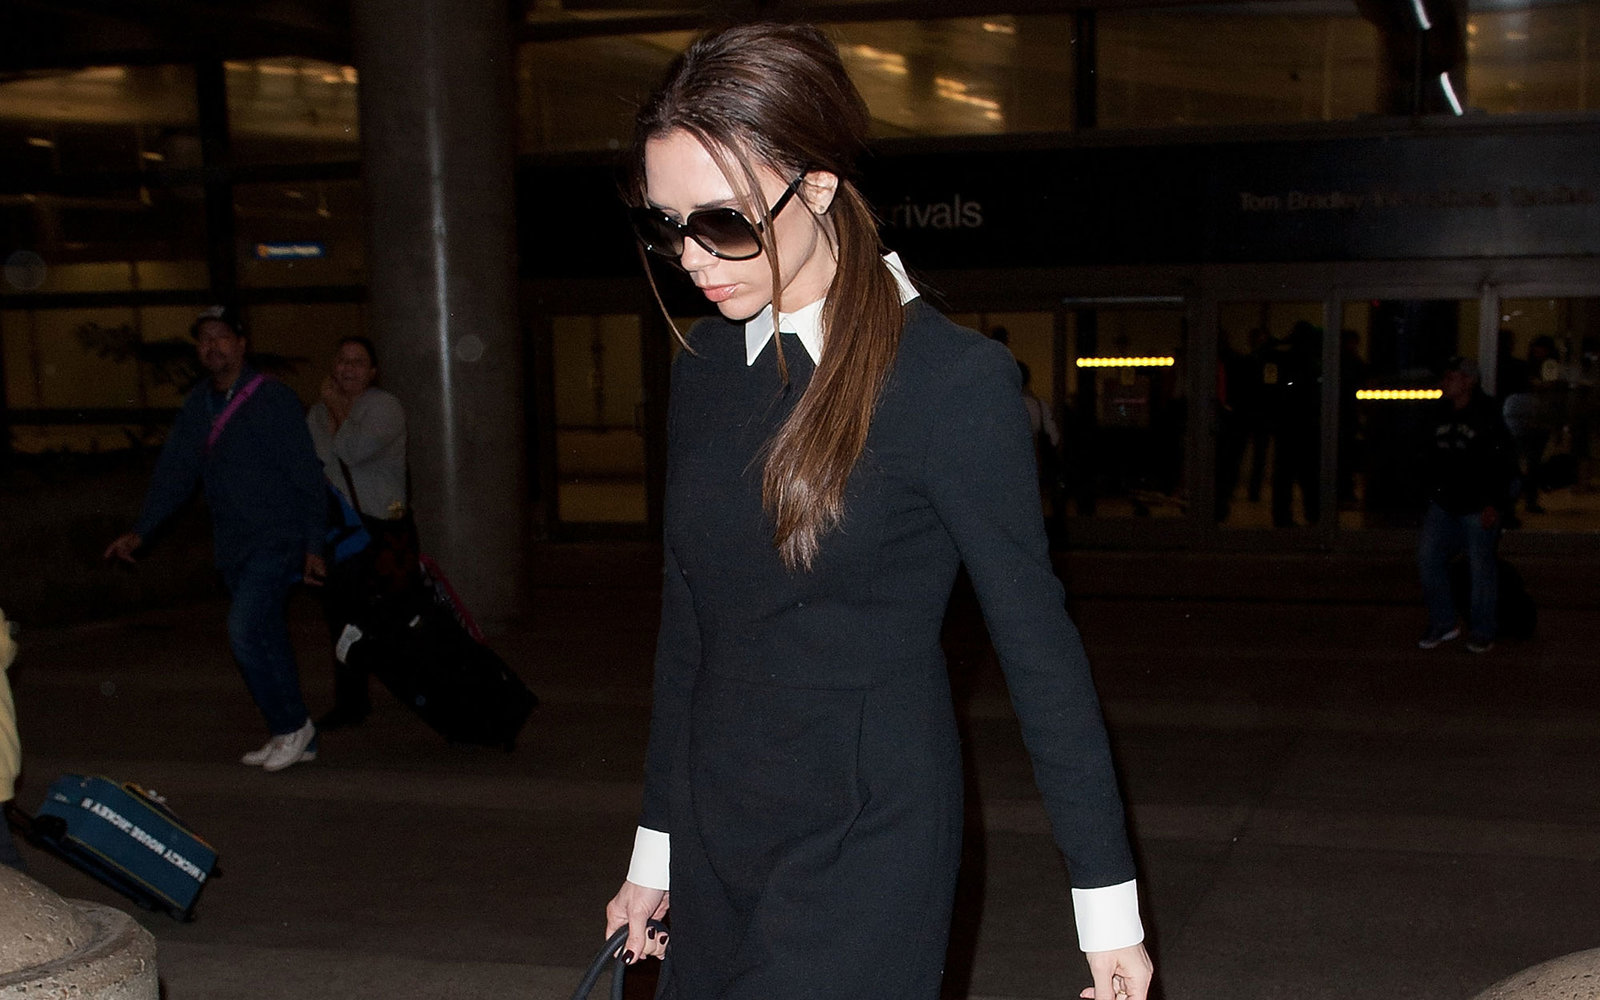 LOS ANGELES, CA - FEBRUARY 18: Victoria Beckham is seen at Los Angeles International Airport on February 18, 2012 in Los Angeles, California.  (Photo by GVK/HM/Bauer-Griffin/GC Images)